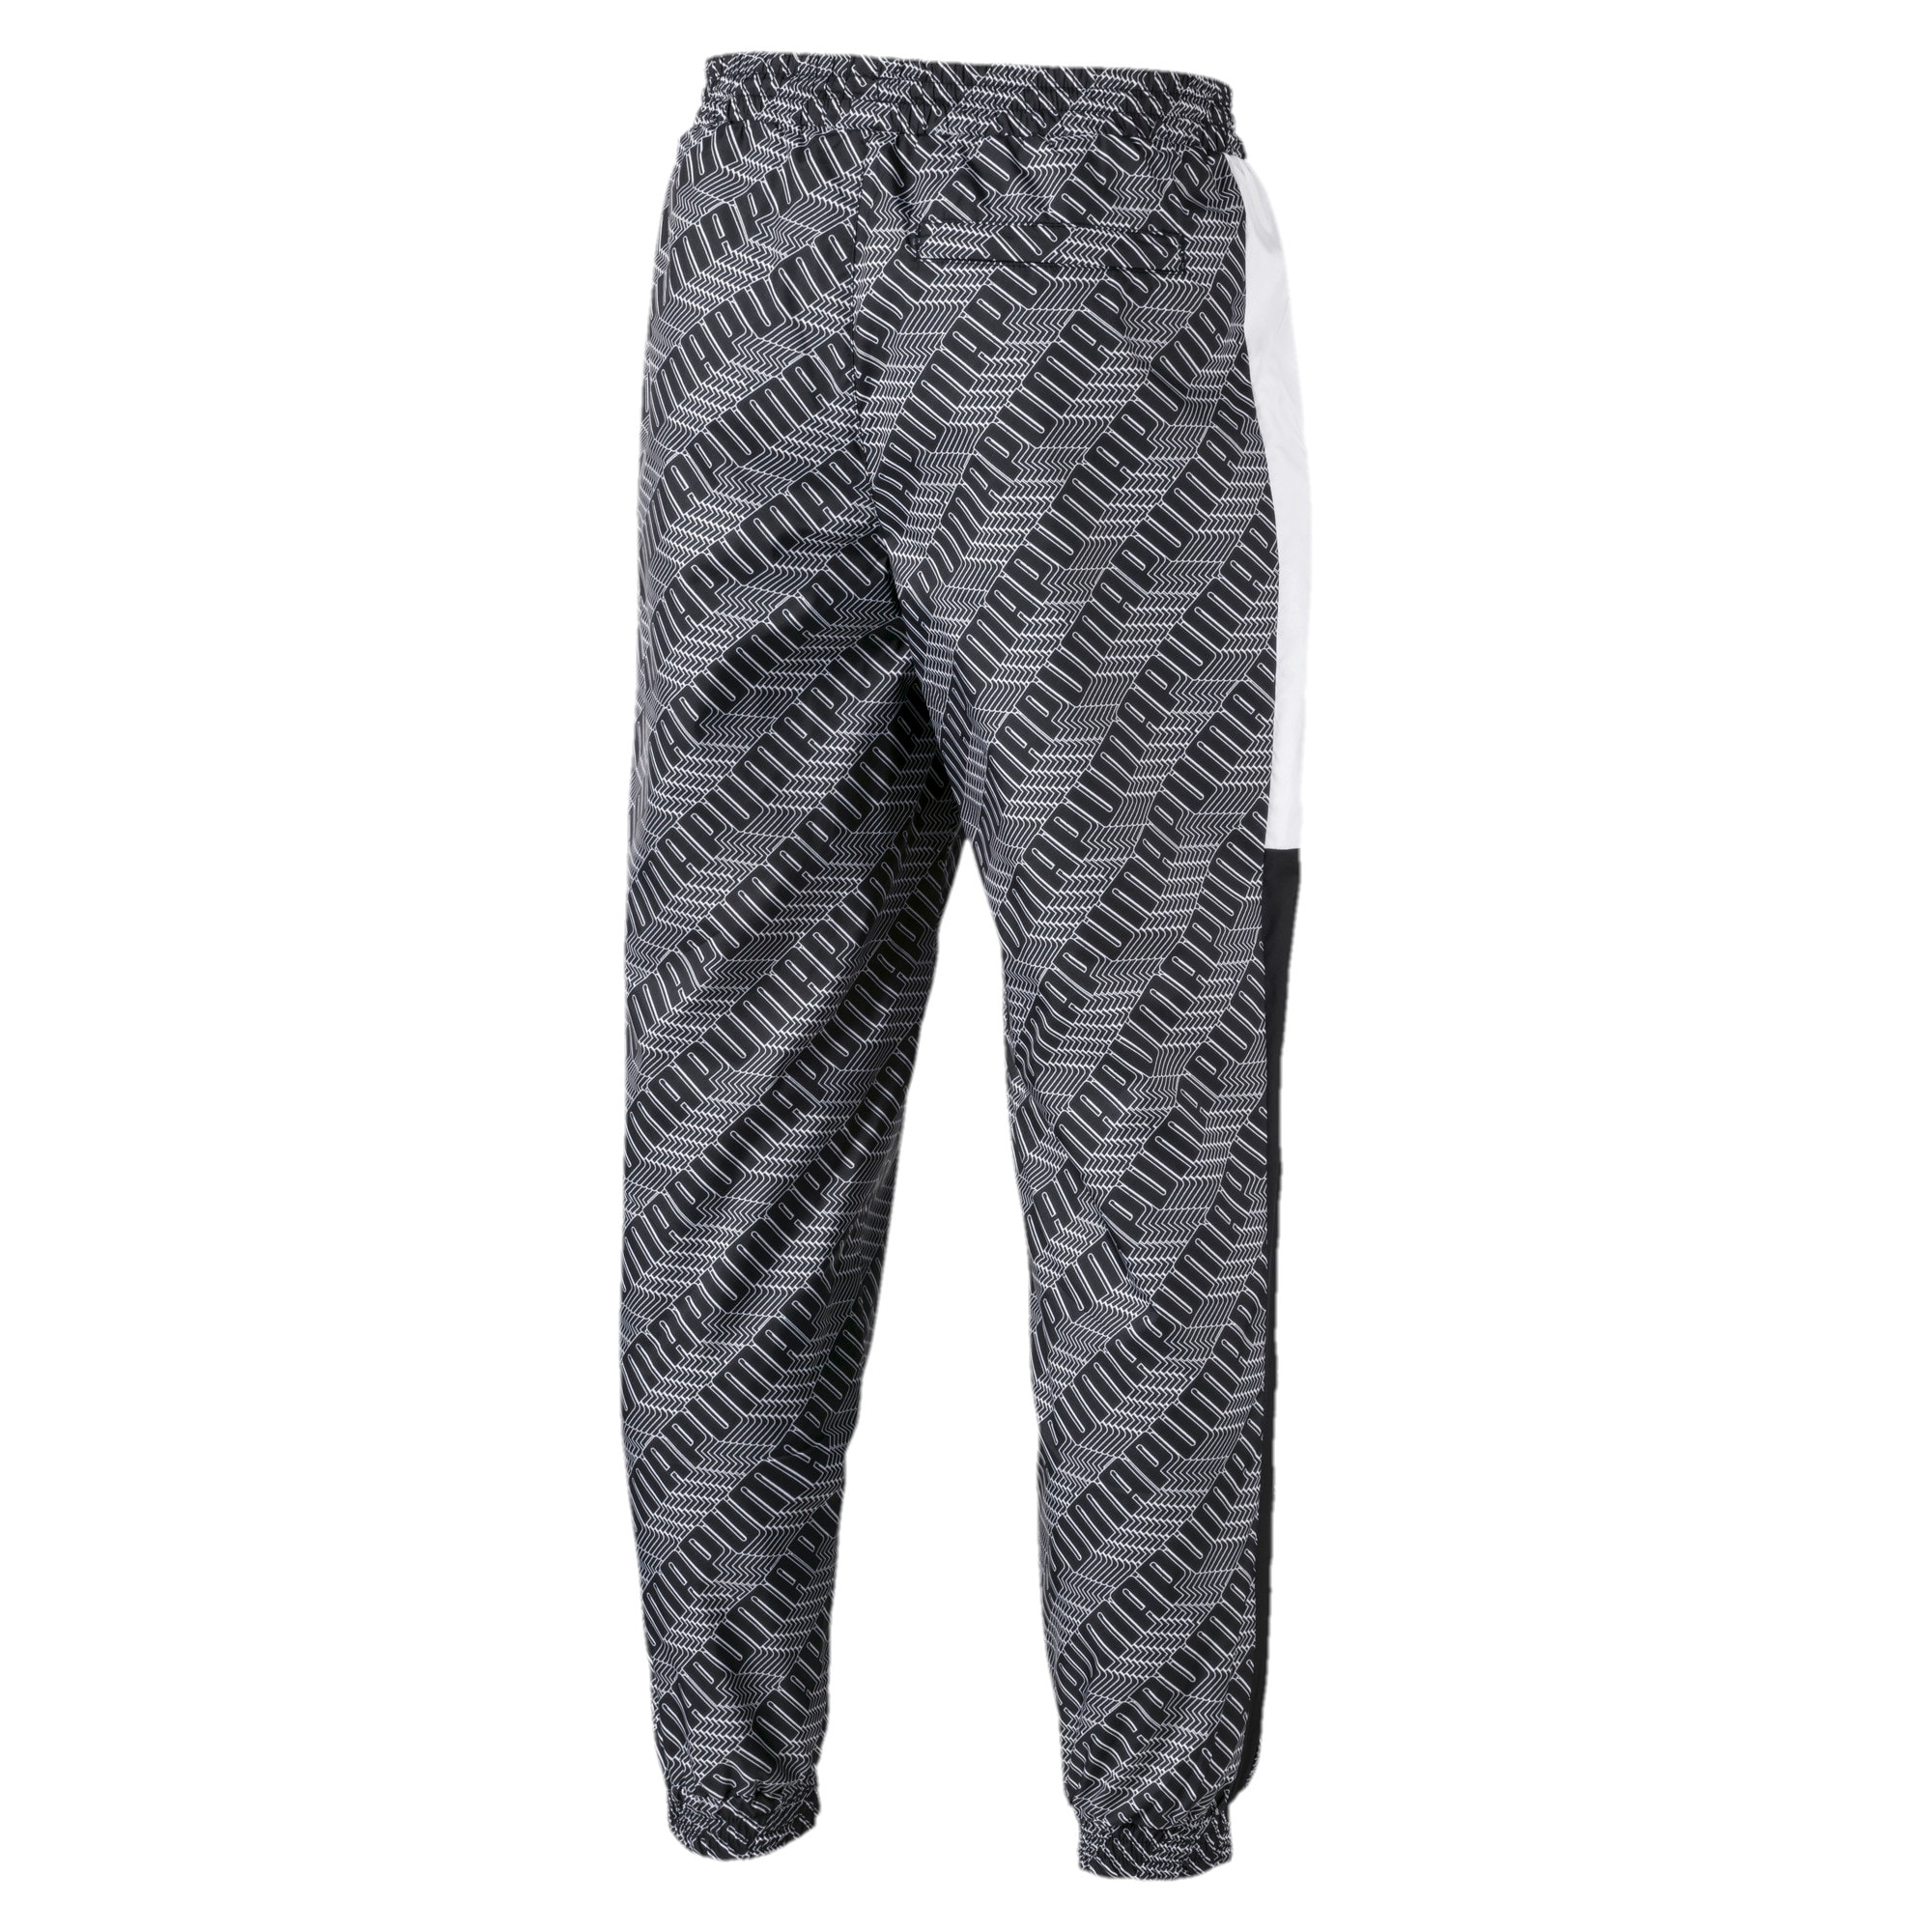 Thumbnail 5 of T7 AOP Panel Men's Track Pants, Puma Black-Repeat logo, medium